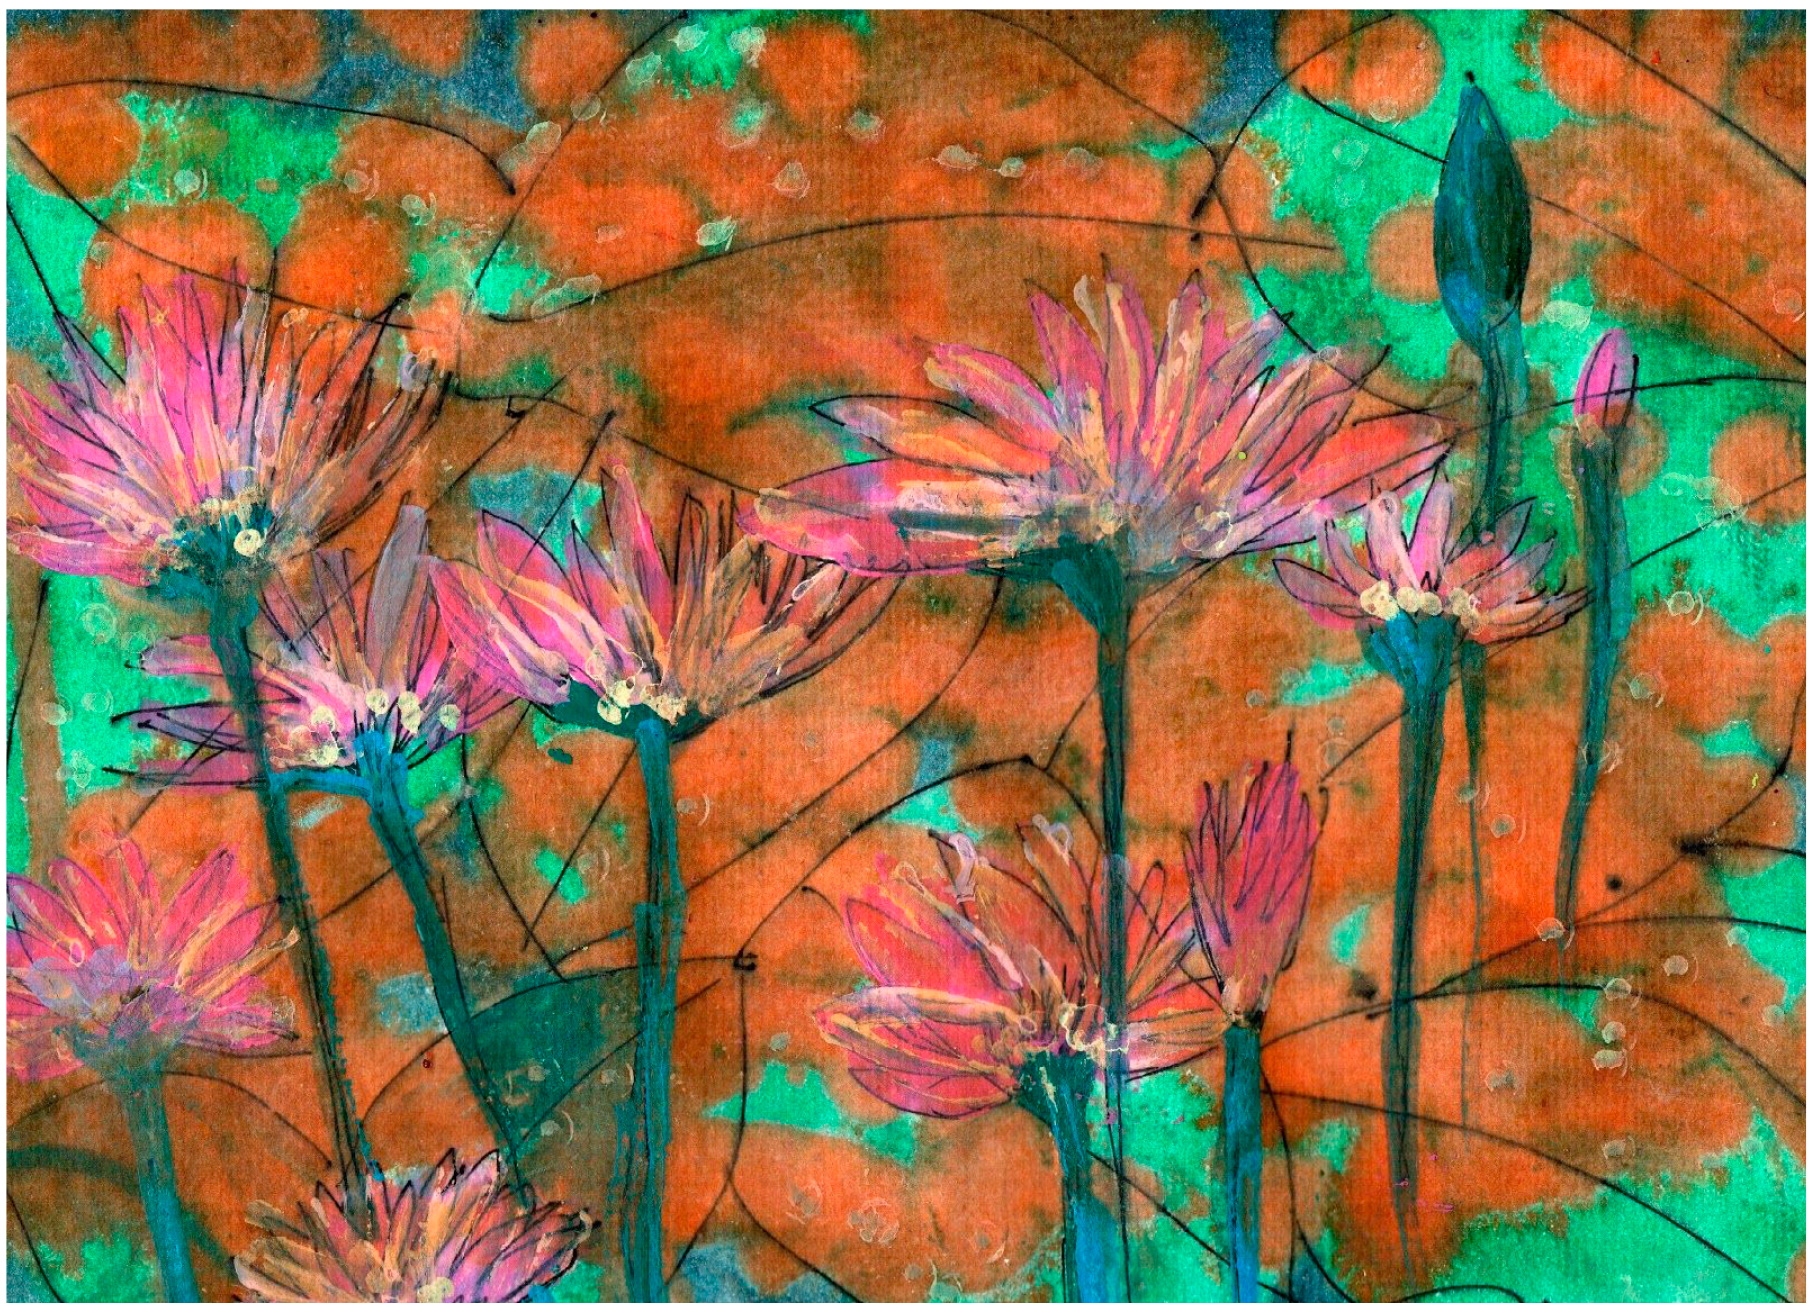 """""""Water Lilies""""by Julie Rowling, 9x11in, liquid water color and pen and ink on cold press water color paper (2016), $125 (matted & framed)